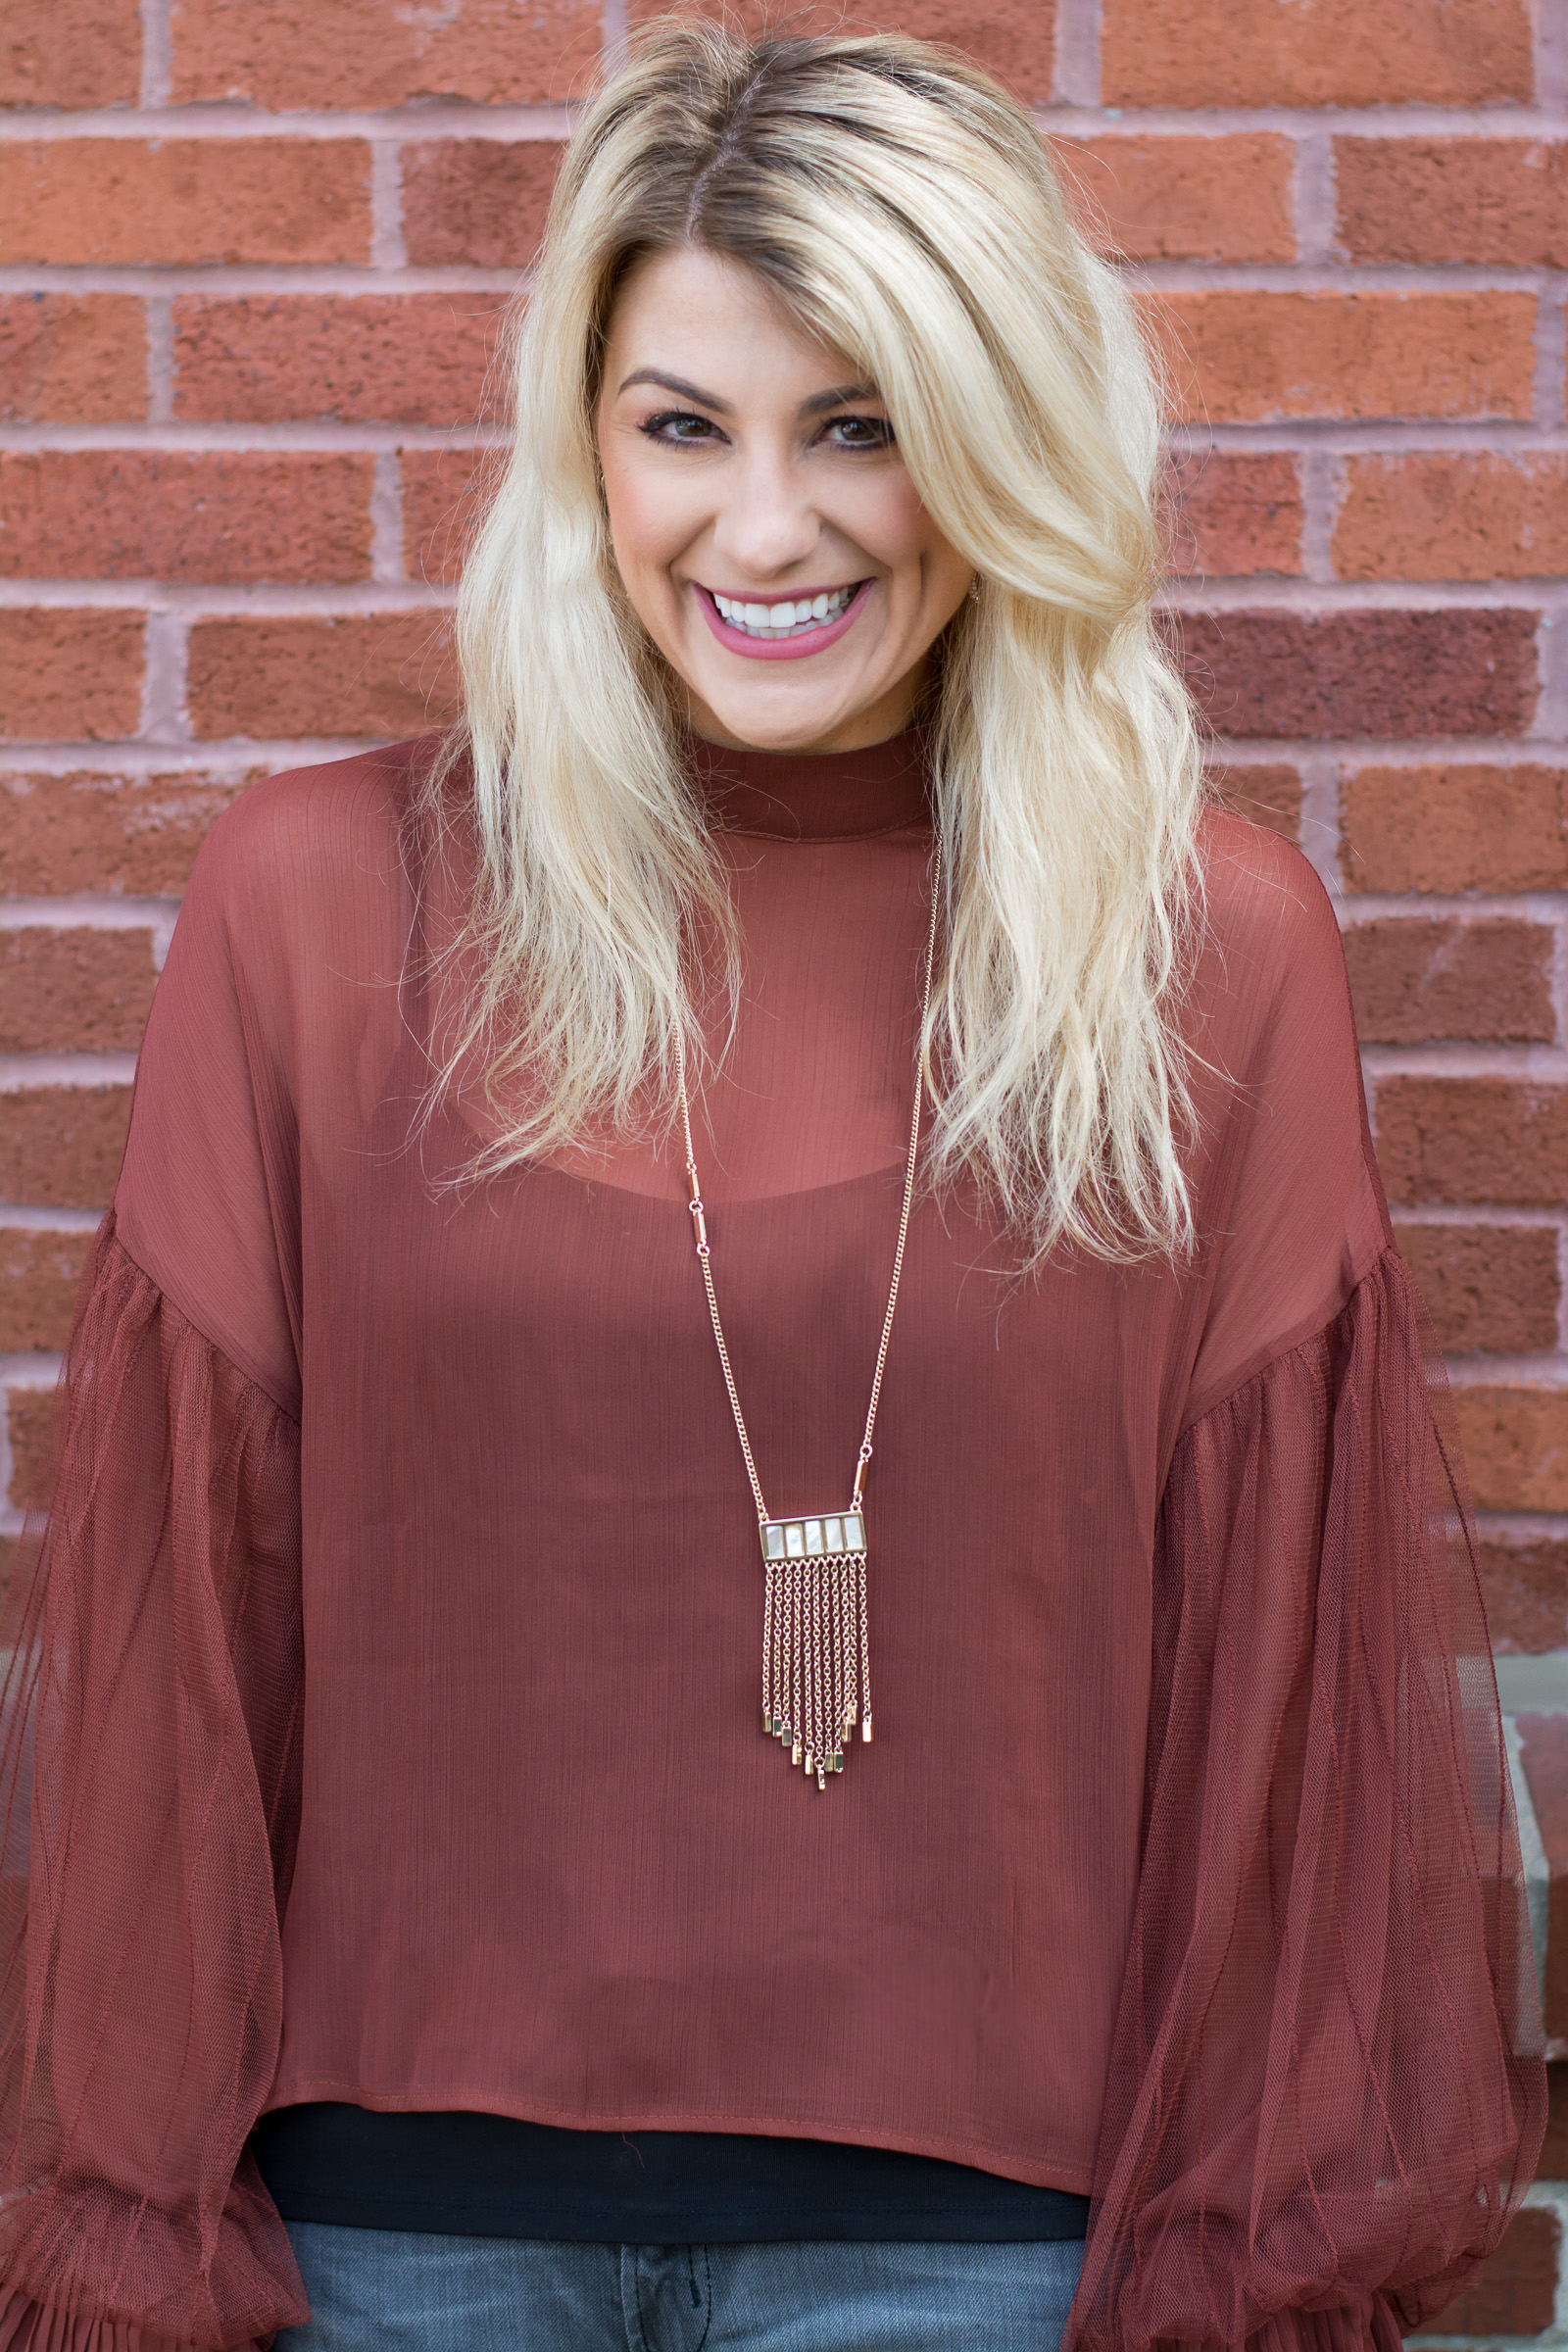 Casual Holiday Outfit: Rust Blouse + Gray Jeans. | Ashley from LSR